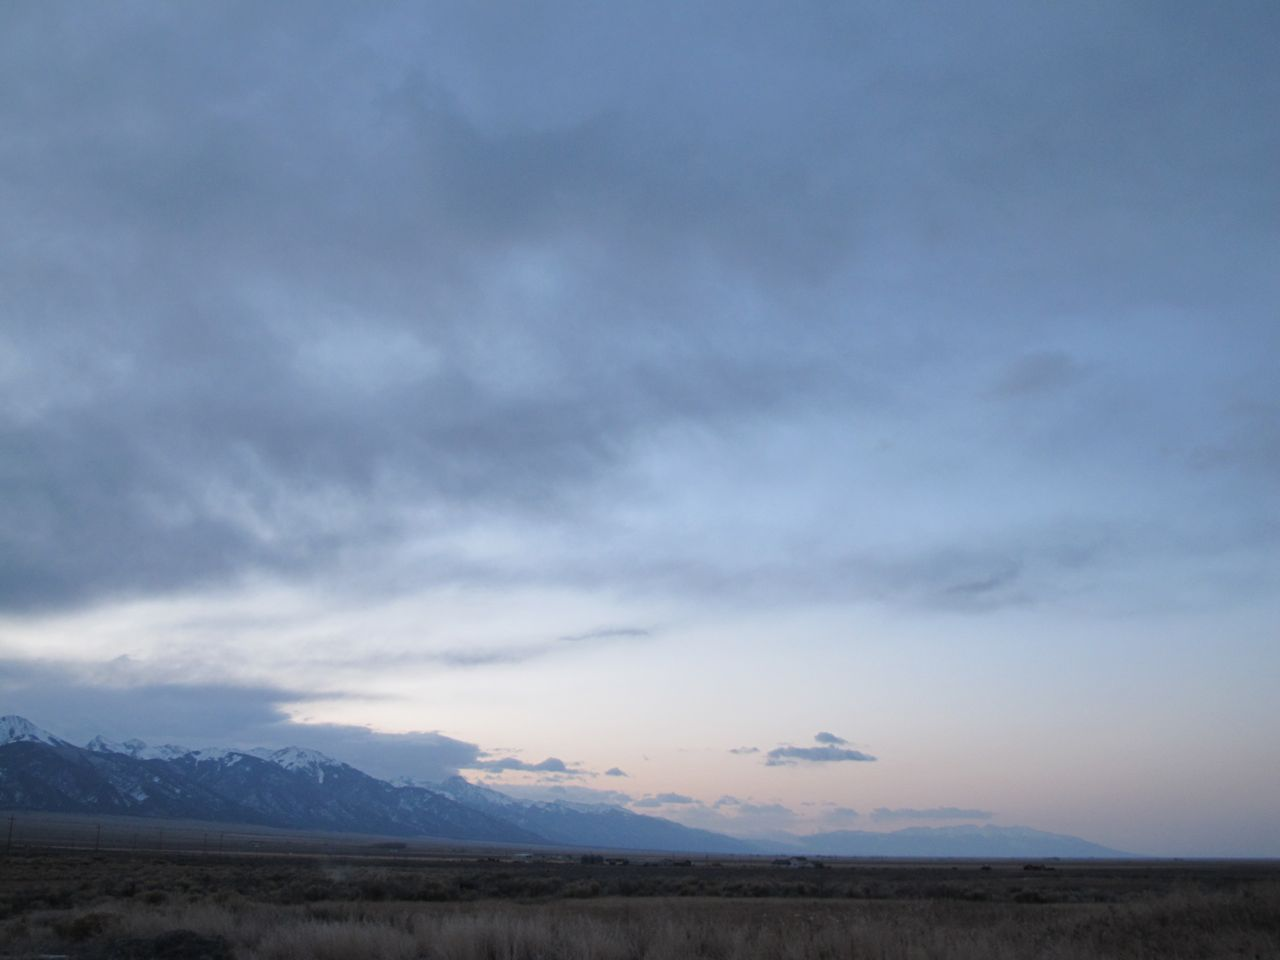 The San Luis Valley and Sangre de Cristo Range at dawn from Joyful Journey